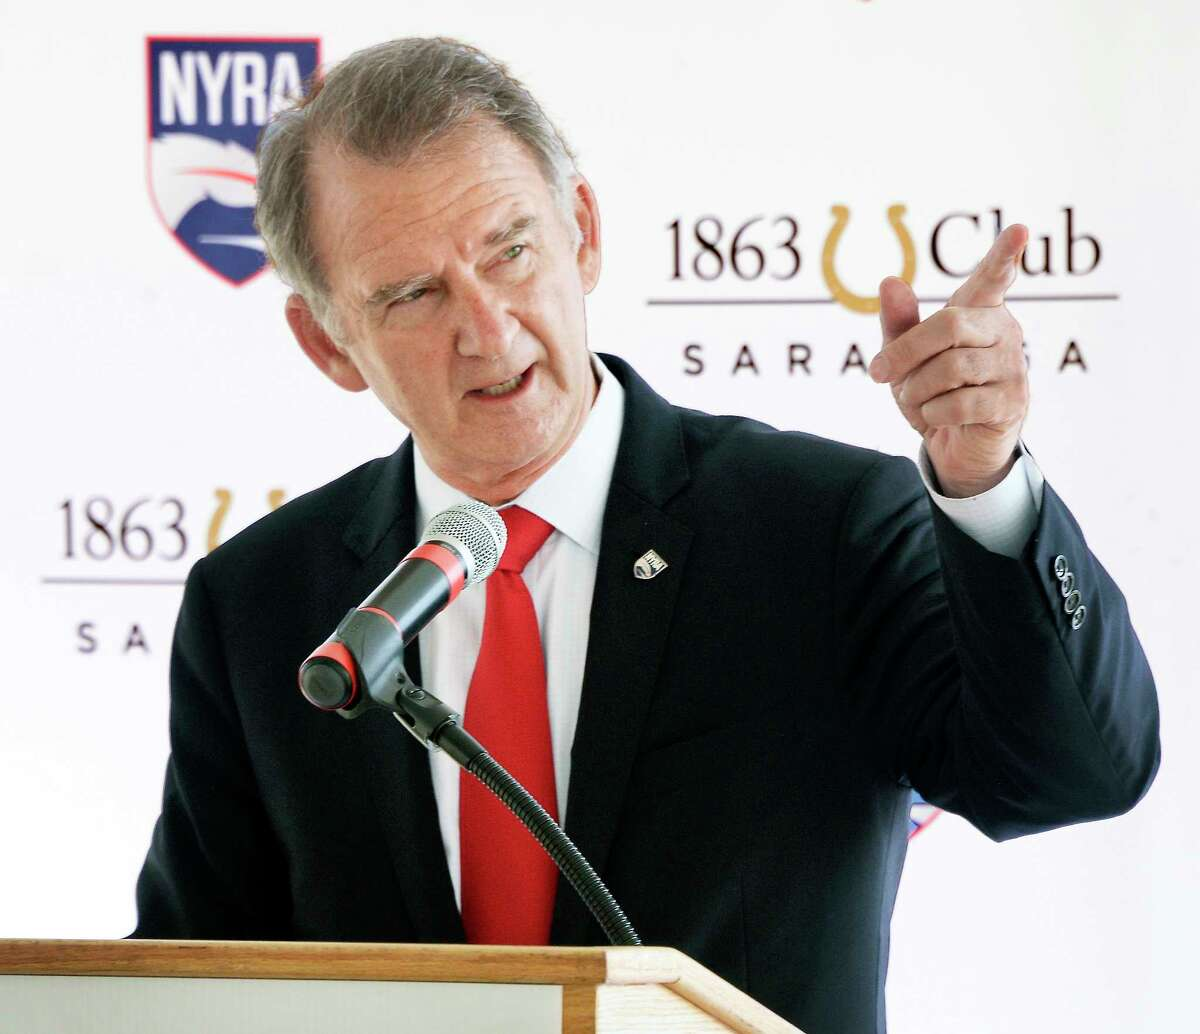 NYRA CEO & President Chris Kay announces plans for the new 1863 Club at Saratoga Race Course Tuesday Sept. 4, 2018 in Saratoga Springs, NY. (John Carl D'Annibale/Times Union)